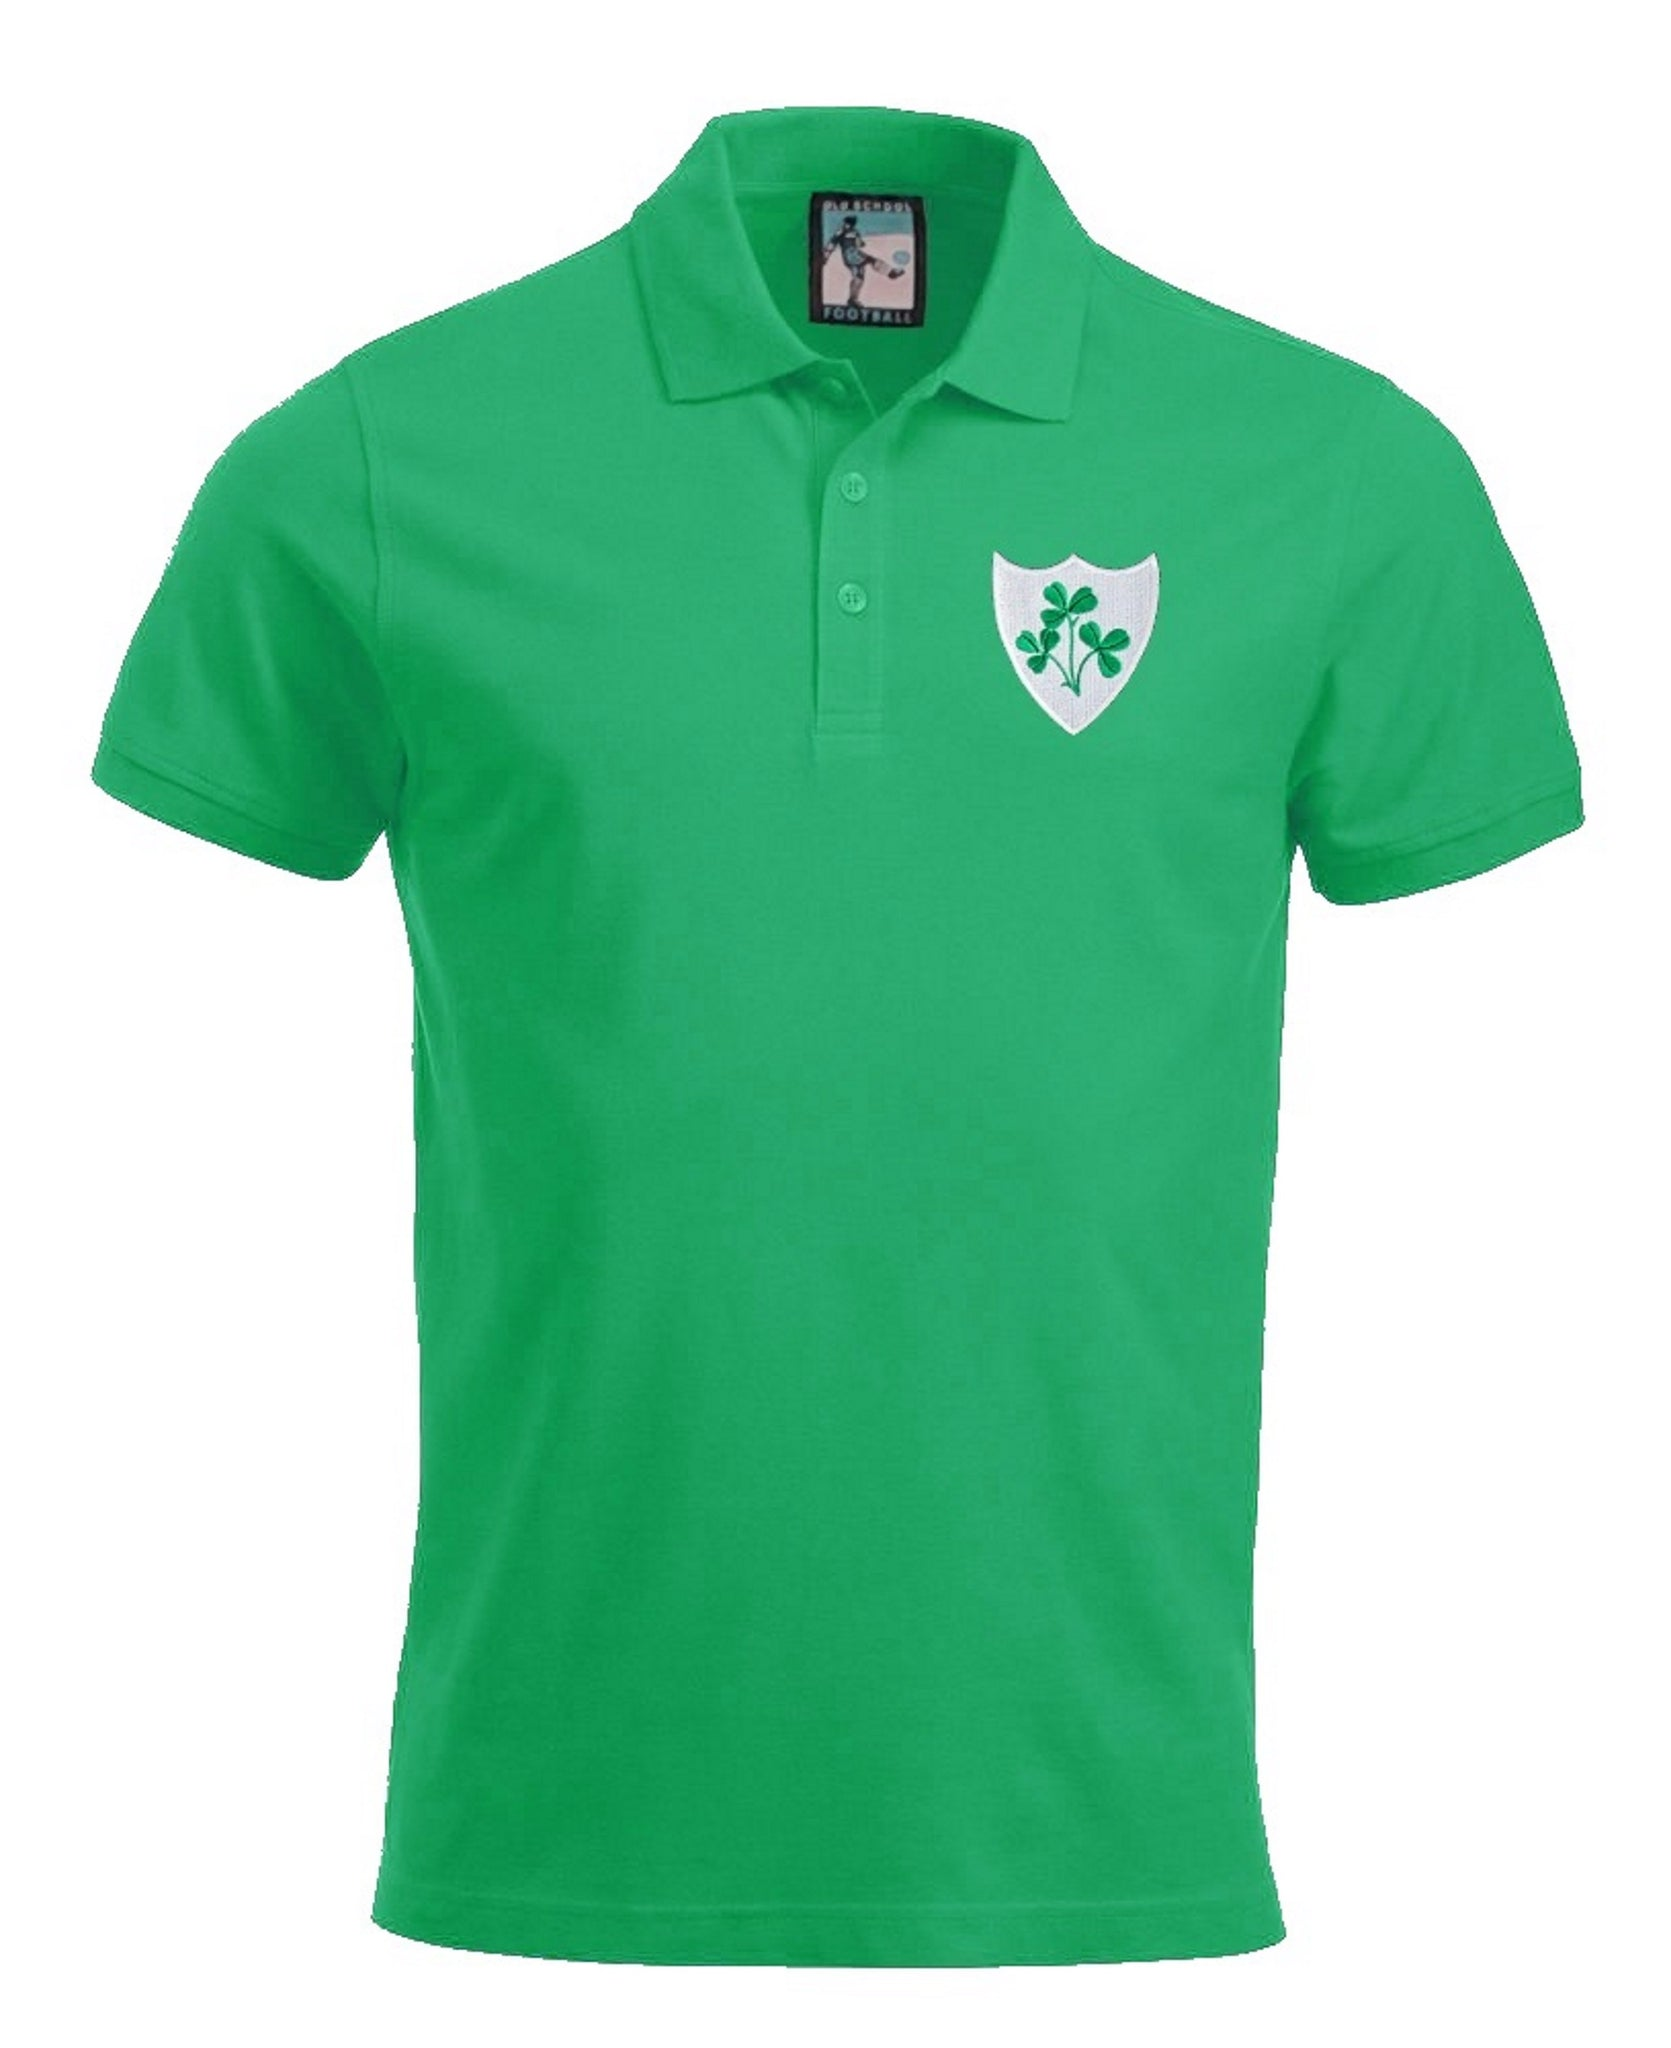 Republic of Ireland Rugby Polo - Old School Football